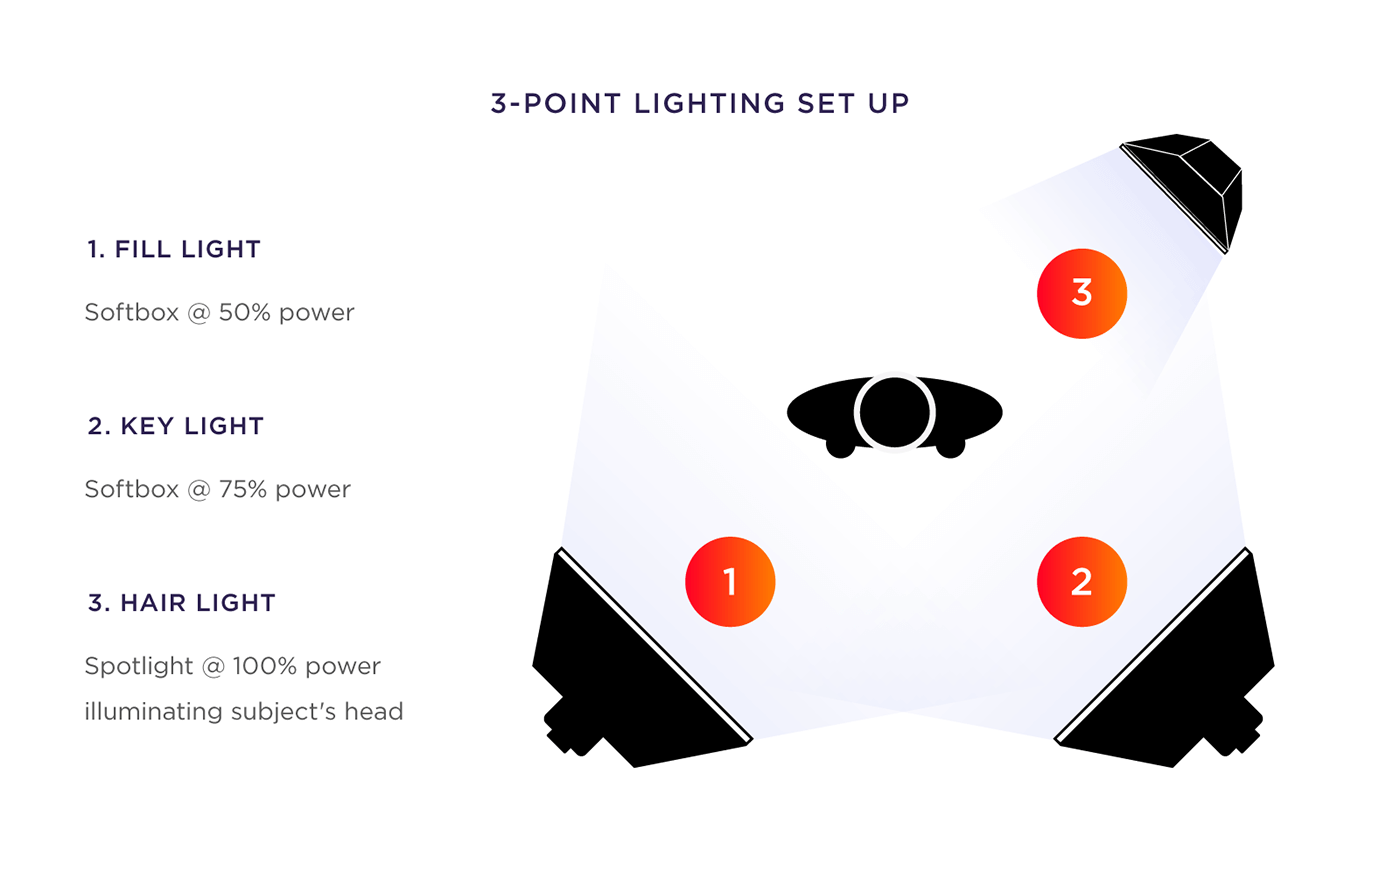 3-point lighting set up